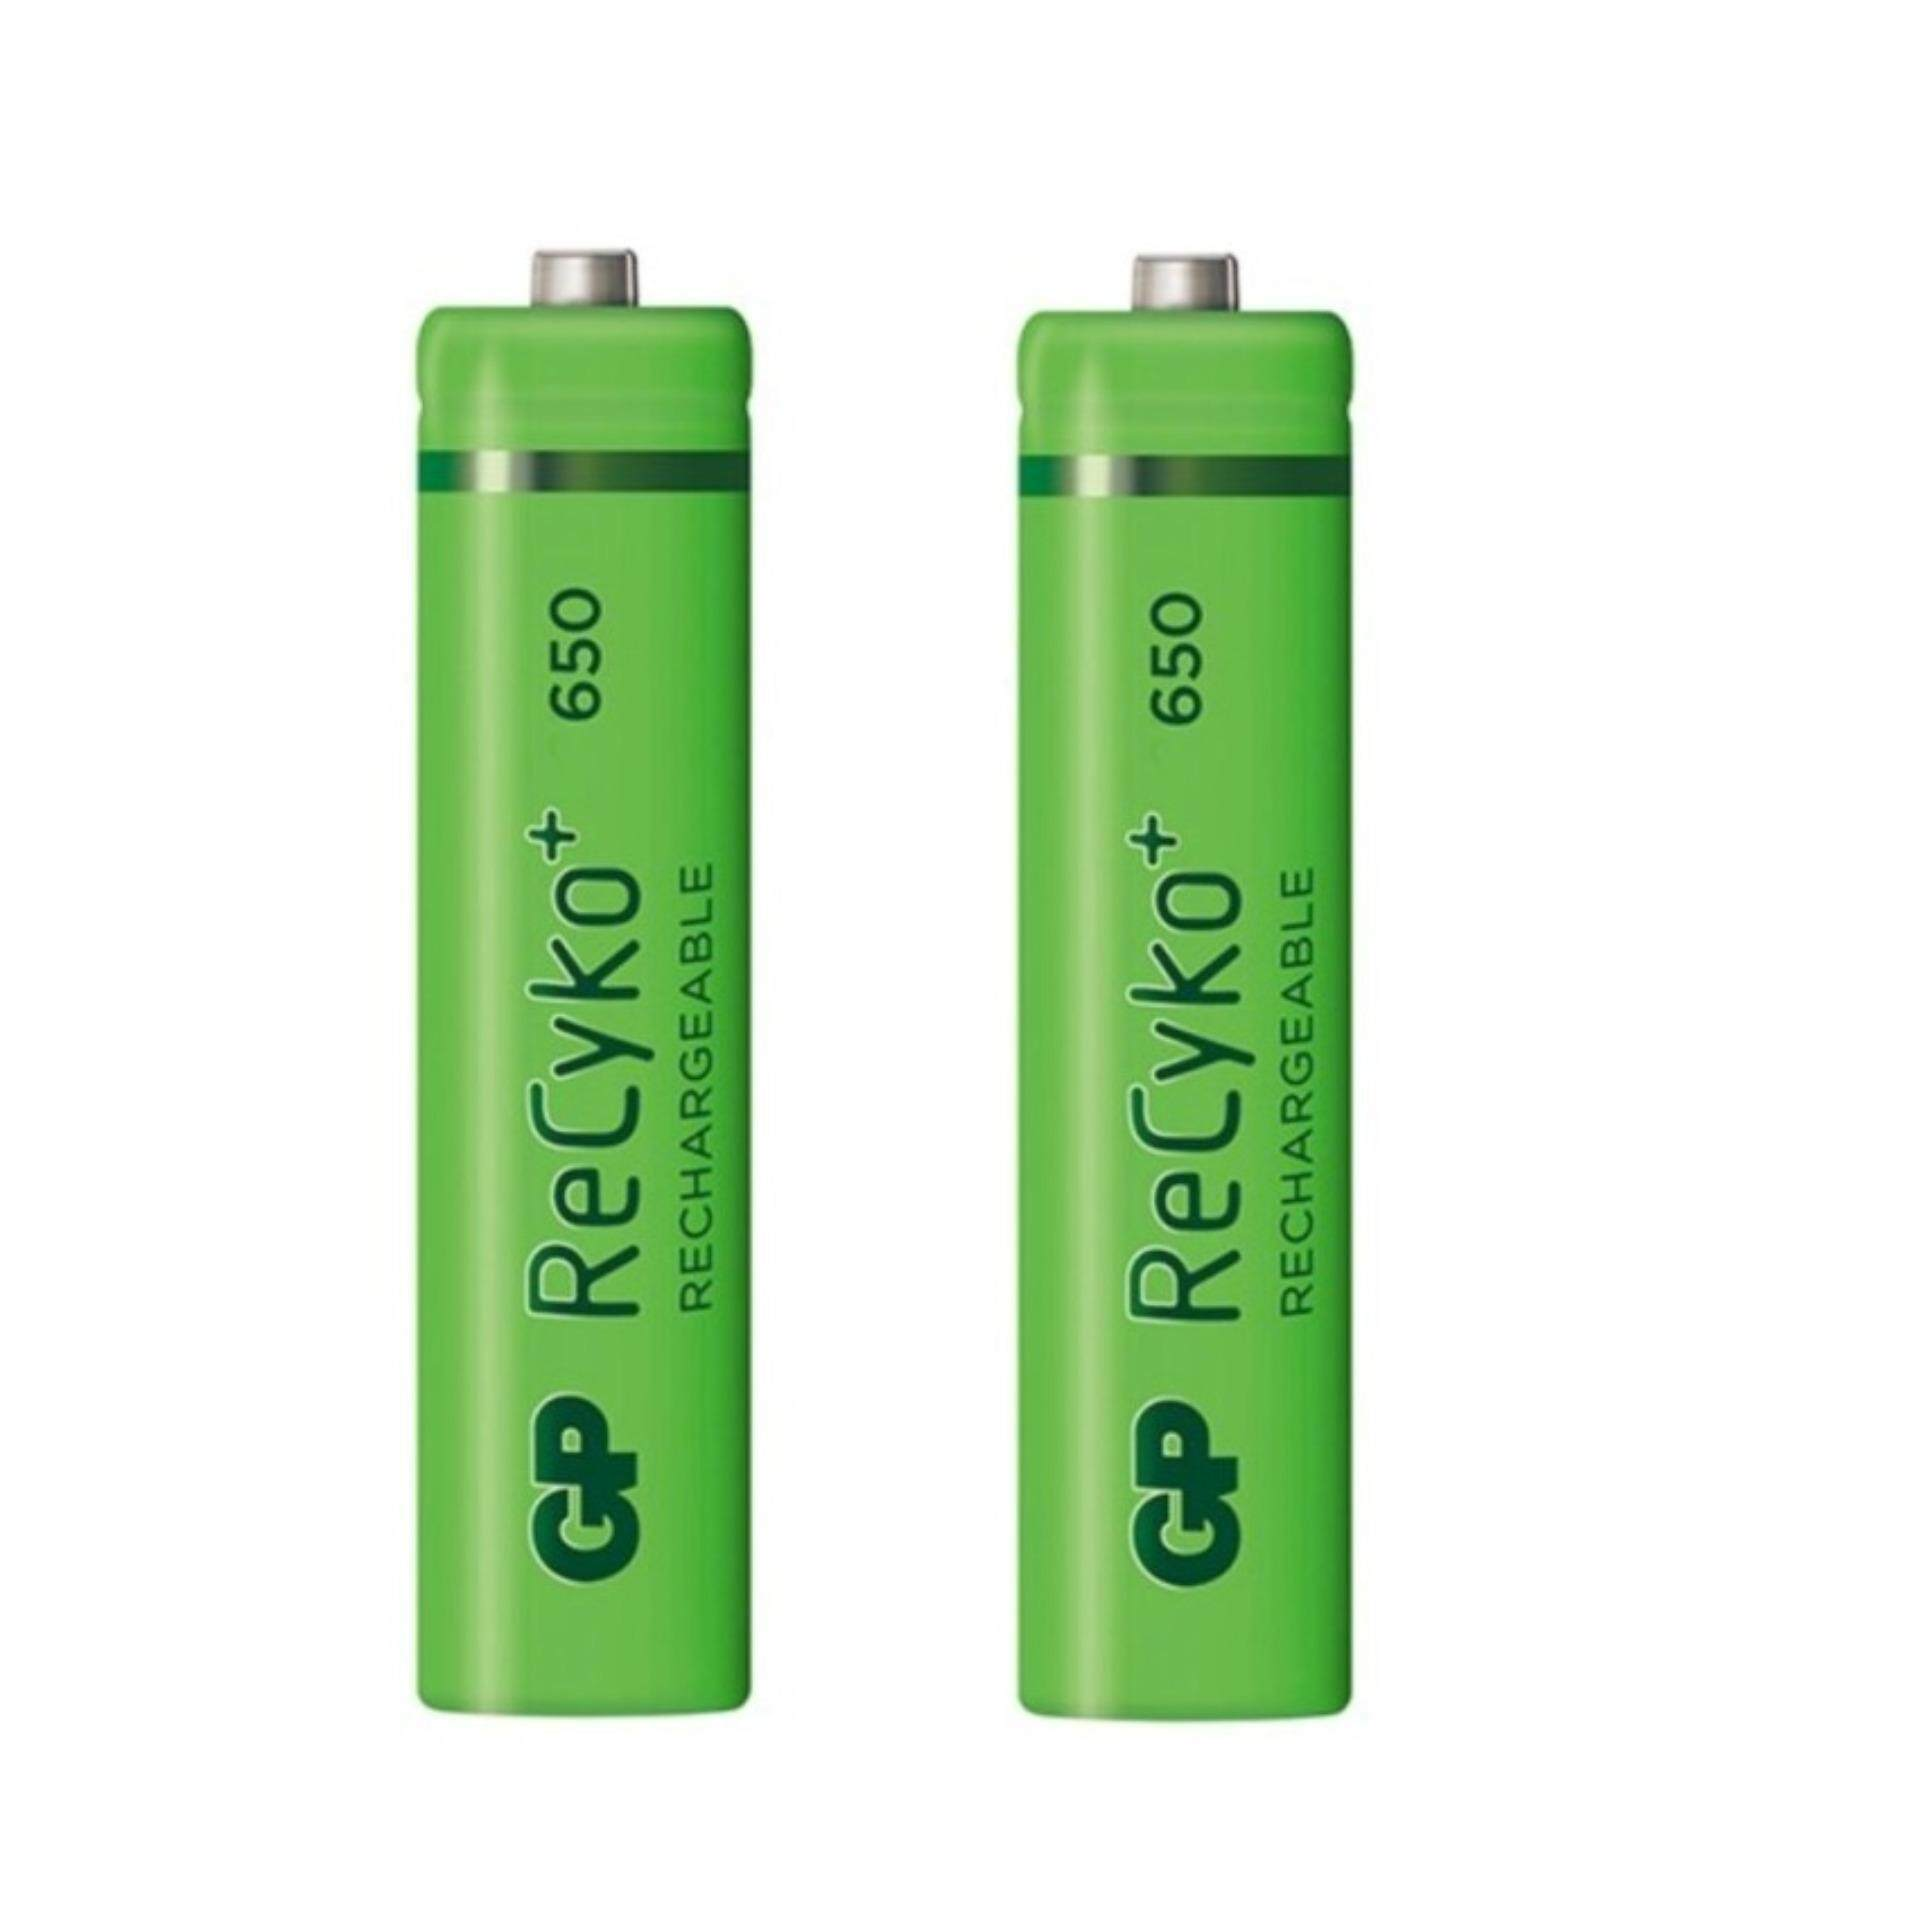 2PCS GP Recyko+ AAA 650mAh Rechargeable Battery - GP65AAAHCE-2GBAS2 Malaysia